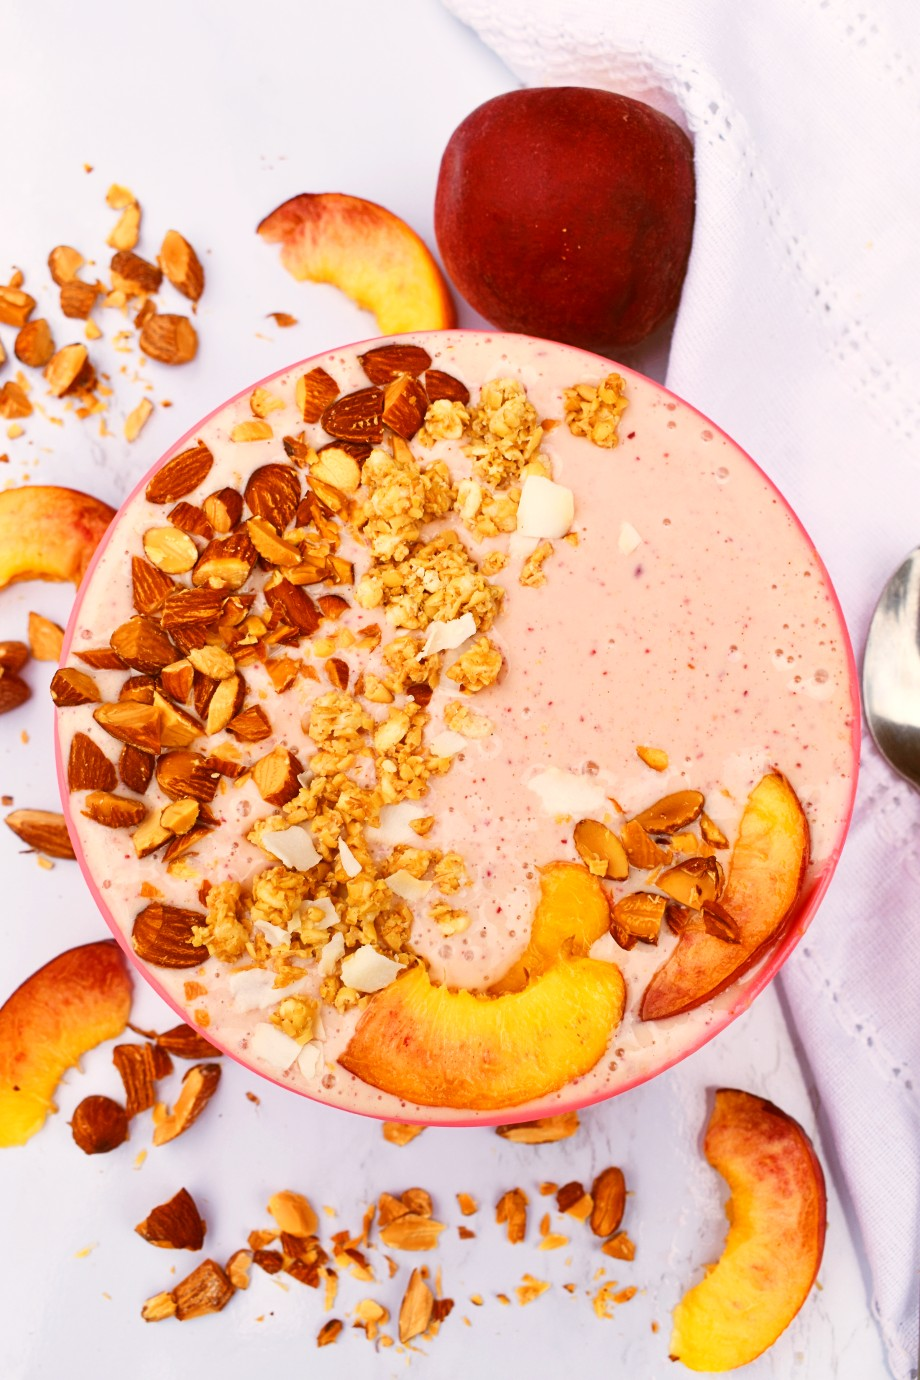 Healthy Peaches and Cream Smoothie Bowls